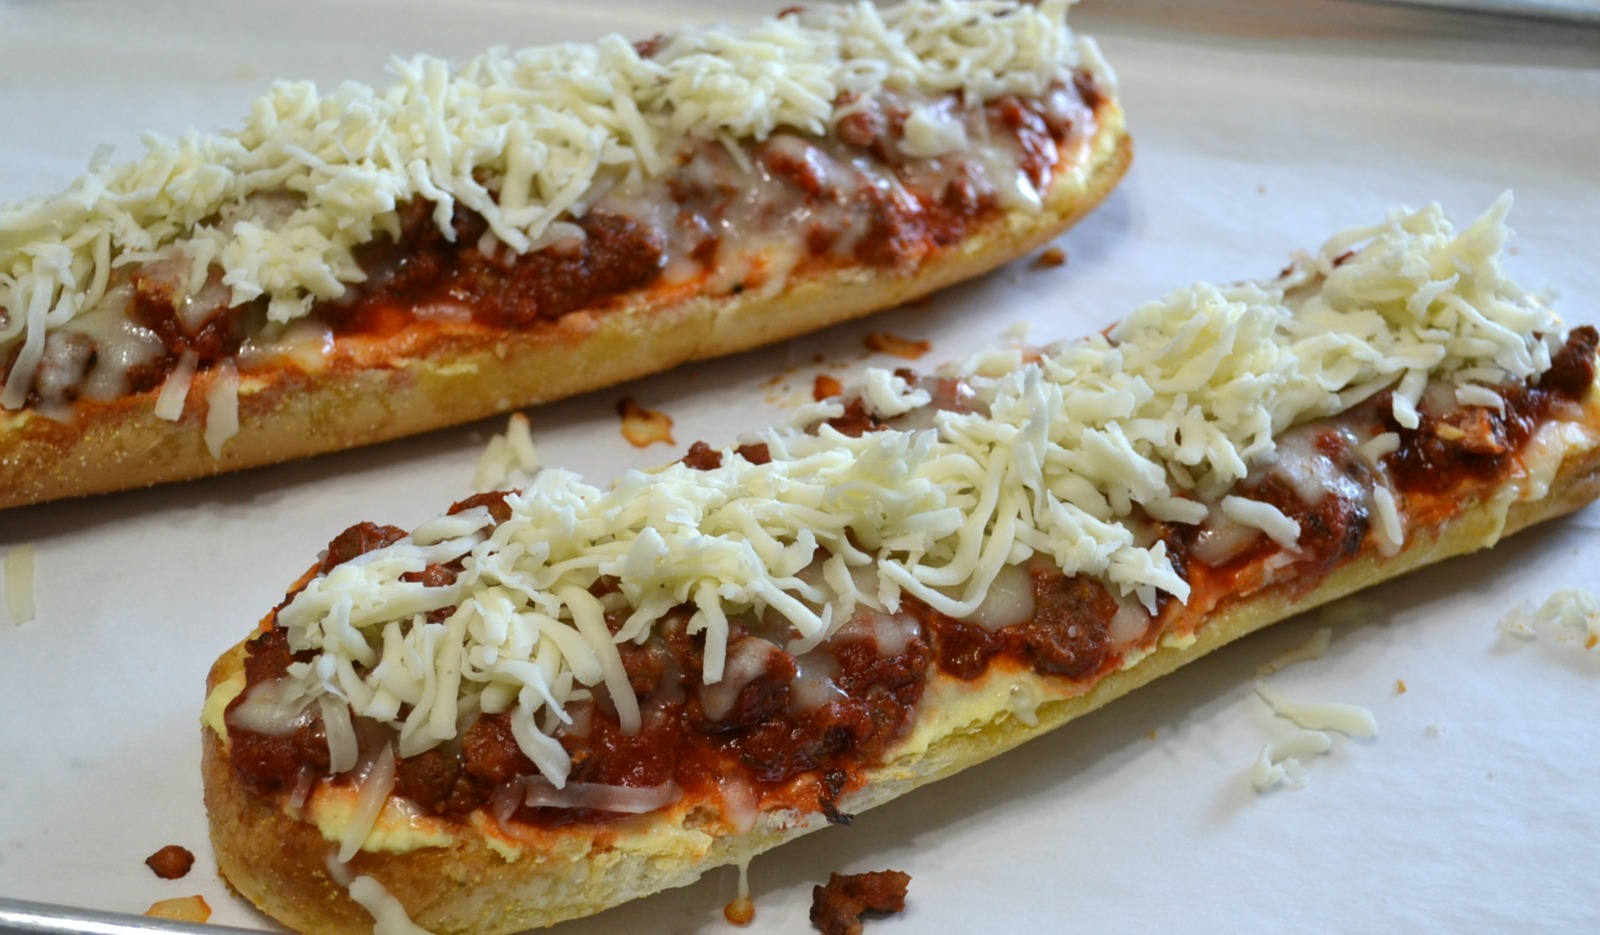 Loaves of garlic bread topped with a ricotta cheese layer, a meat sauce, and lots of melted mozzarella cheese. Perfect for dinner or cut into smaller pieces as an appetizer.